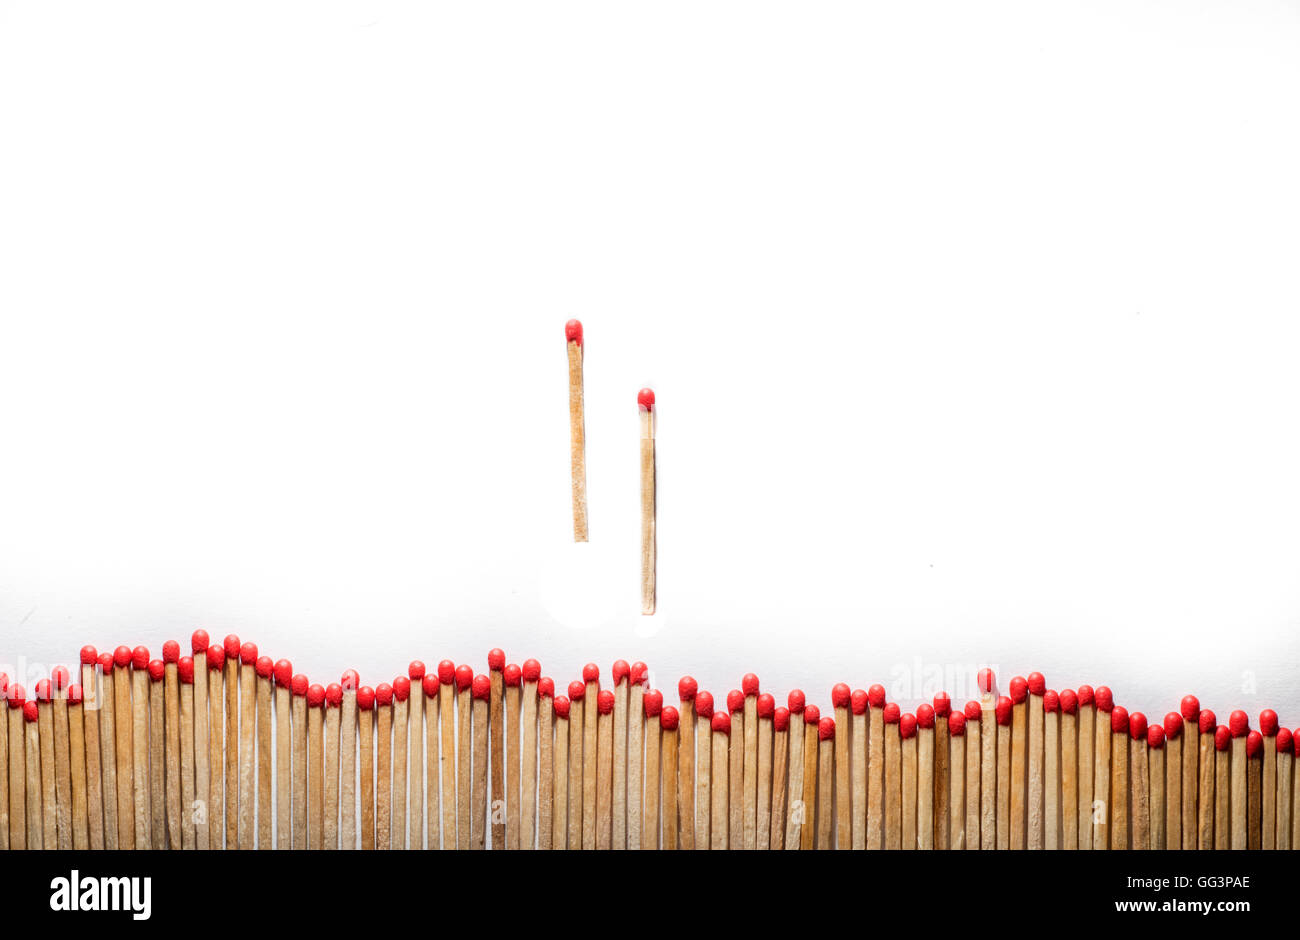 alienated many matches and two separate hasten - Stock Image